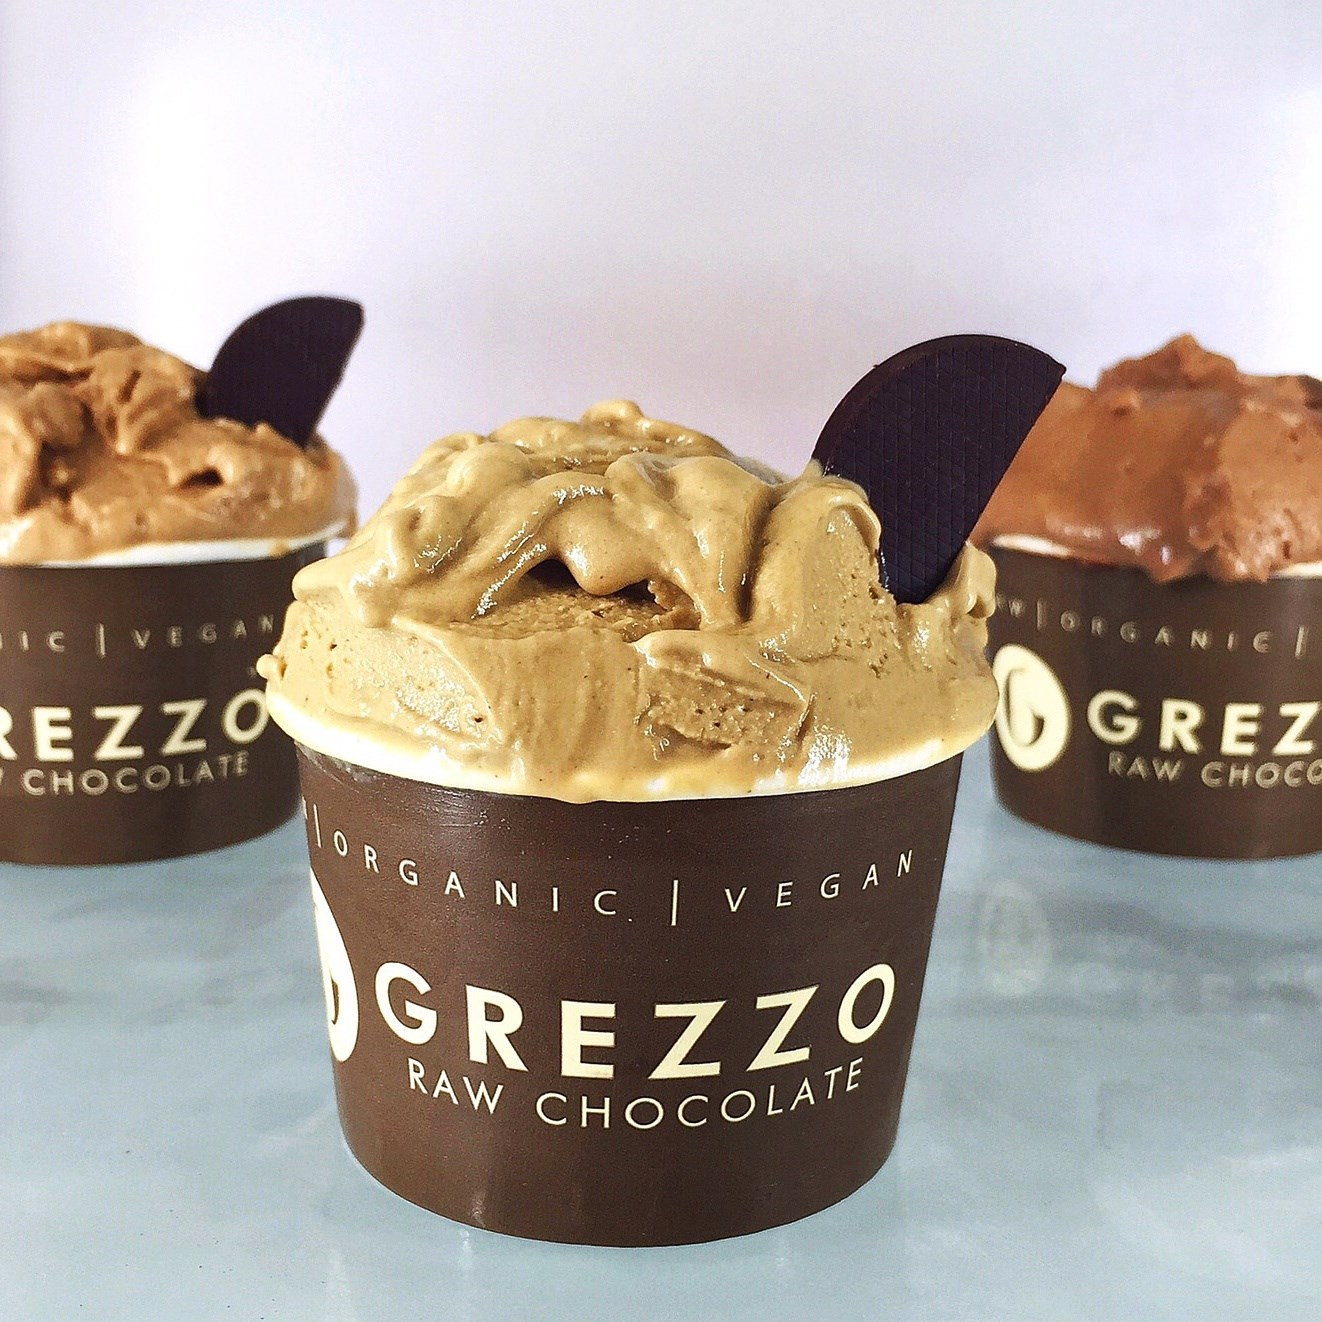 Grezzo Raw Chocolate vegan